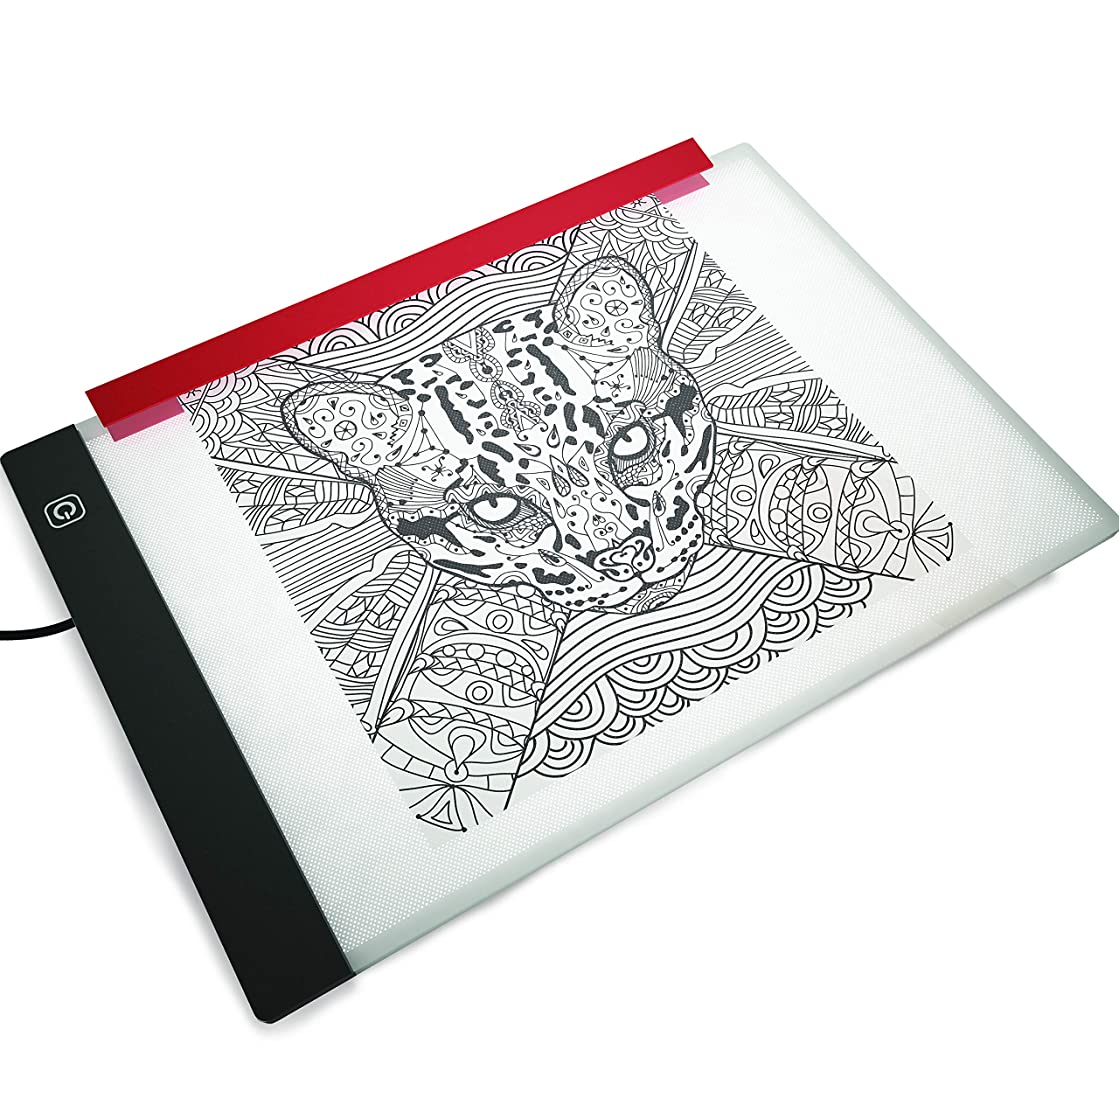 Light Box for Drawing and Tracing by Illuminati - Ultra Thin Acrylic Led Light Table - Comes with Filter to Prevent Eye Fatigue Plus Tracing Paper and Holder Clamp - Hi-Mid-Low Brightness Control